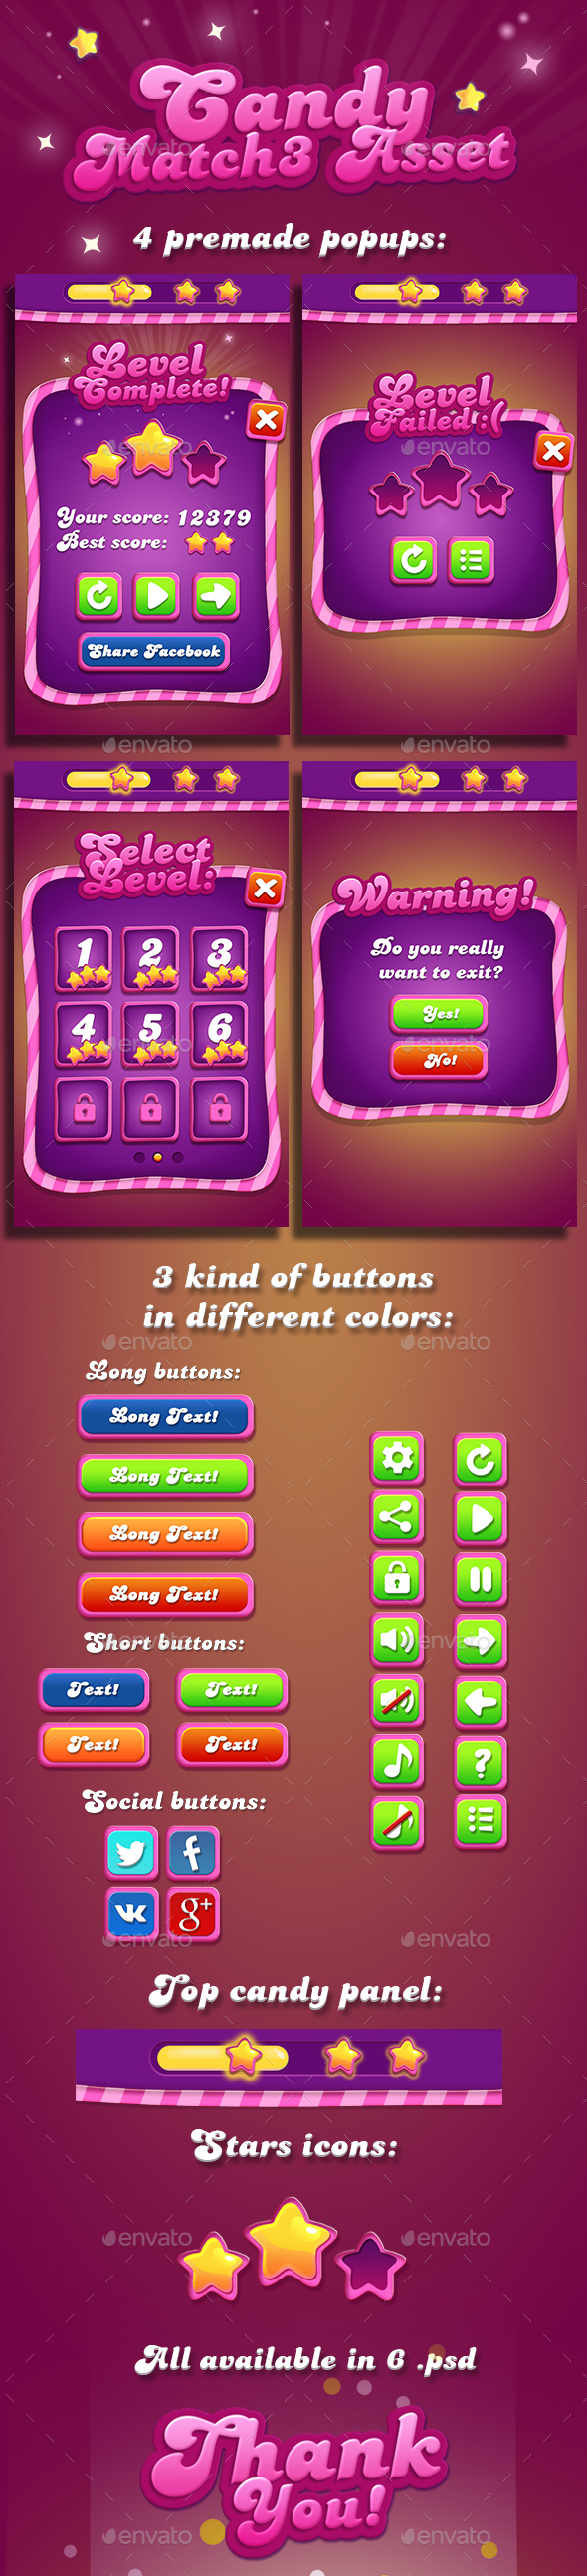 Candy Match-3 GUI (User Interfaces)